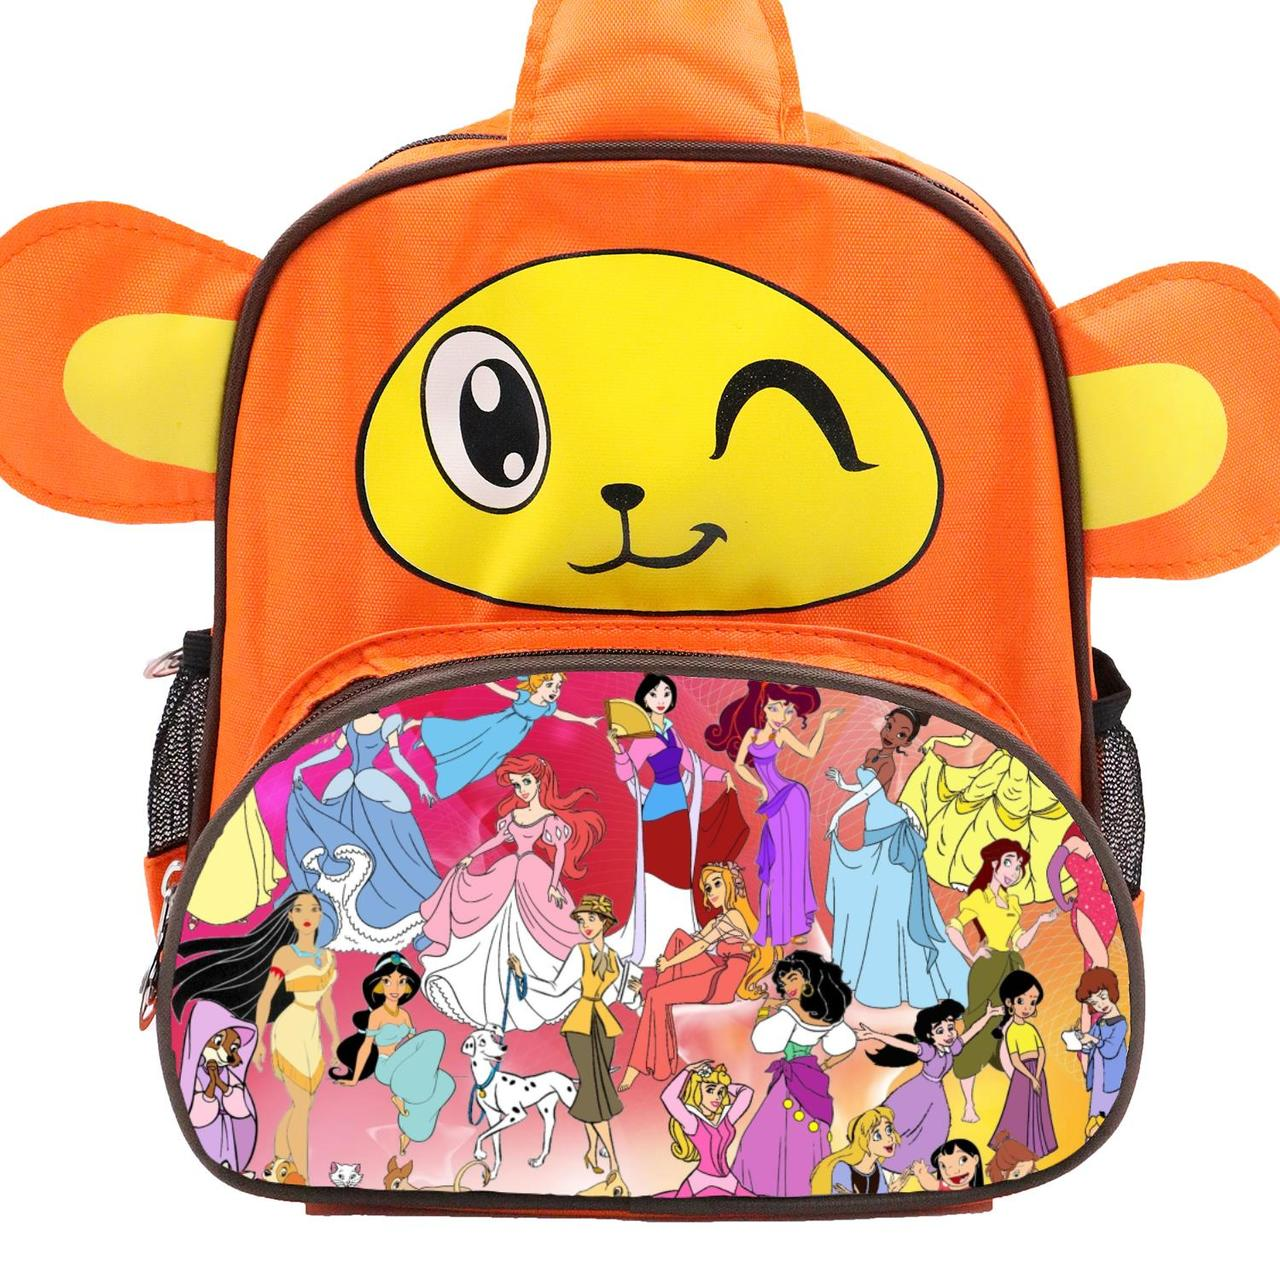 93adc79c24 ... Backpack Children s School Bag for Boys and Girls Orange Monkey disney  1  Product No  10288338. Item specifics  Brand